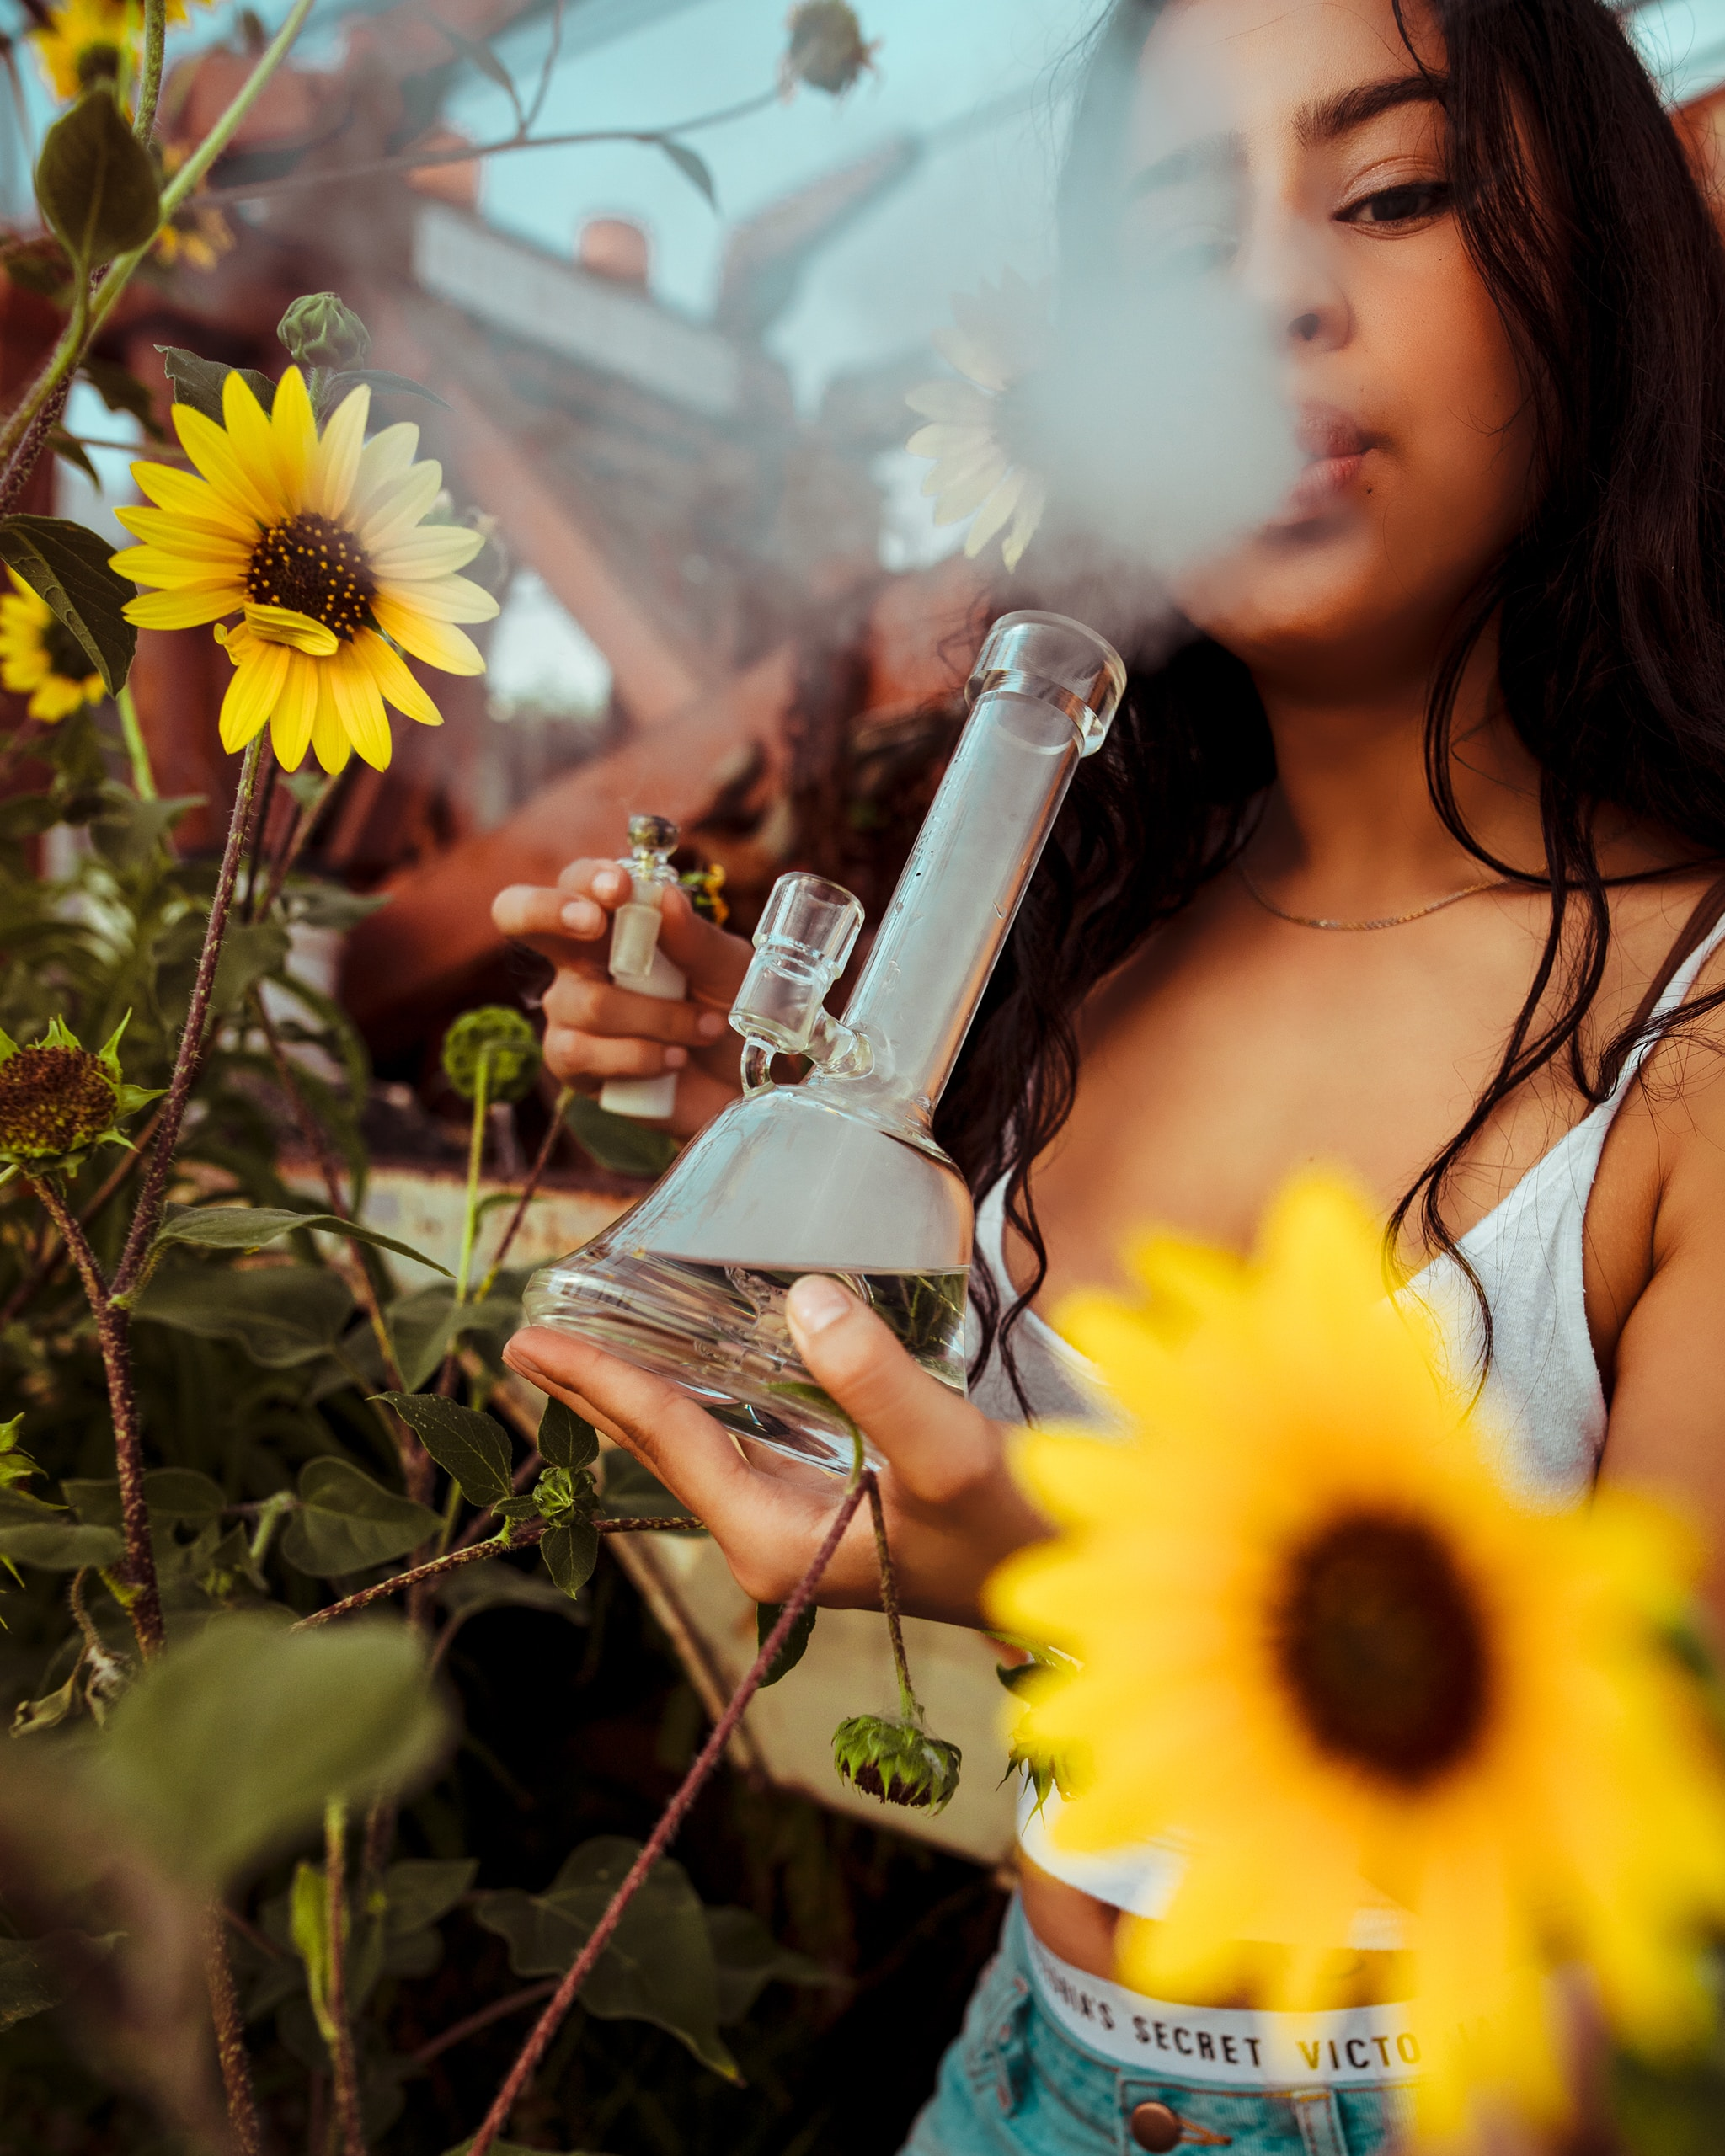 Turn On, Tune In and Stay Home: Virtual 4/20 Celebrations to Keep It Lit on Lockdown